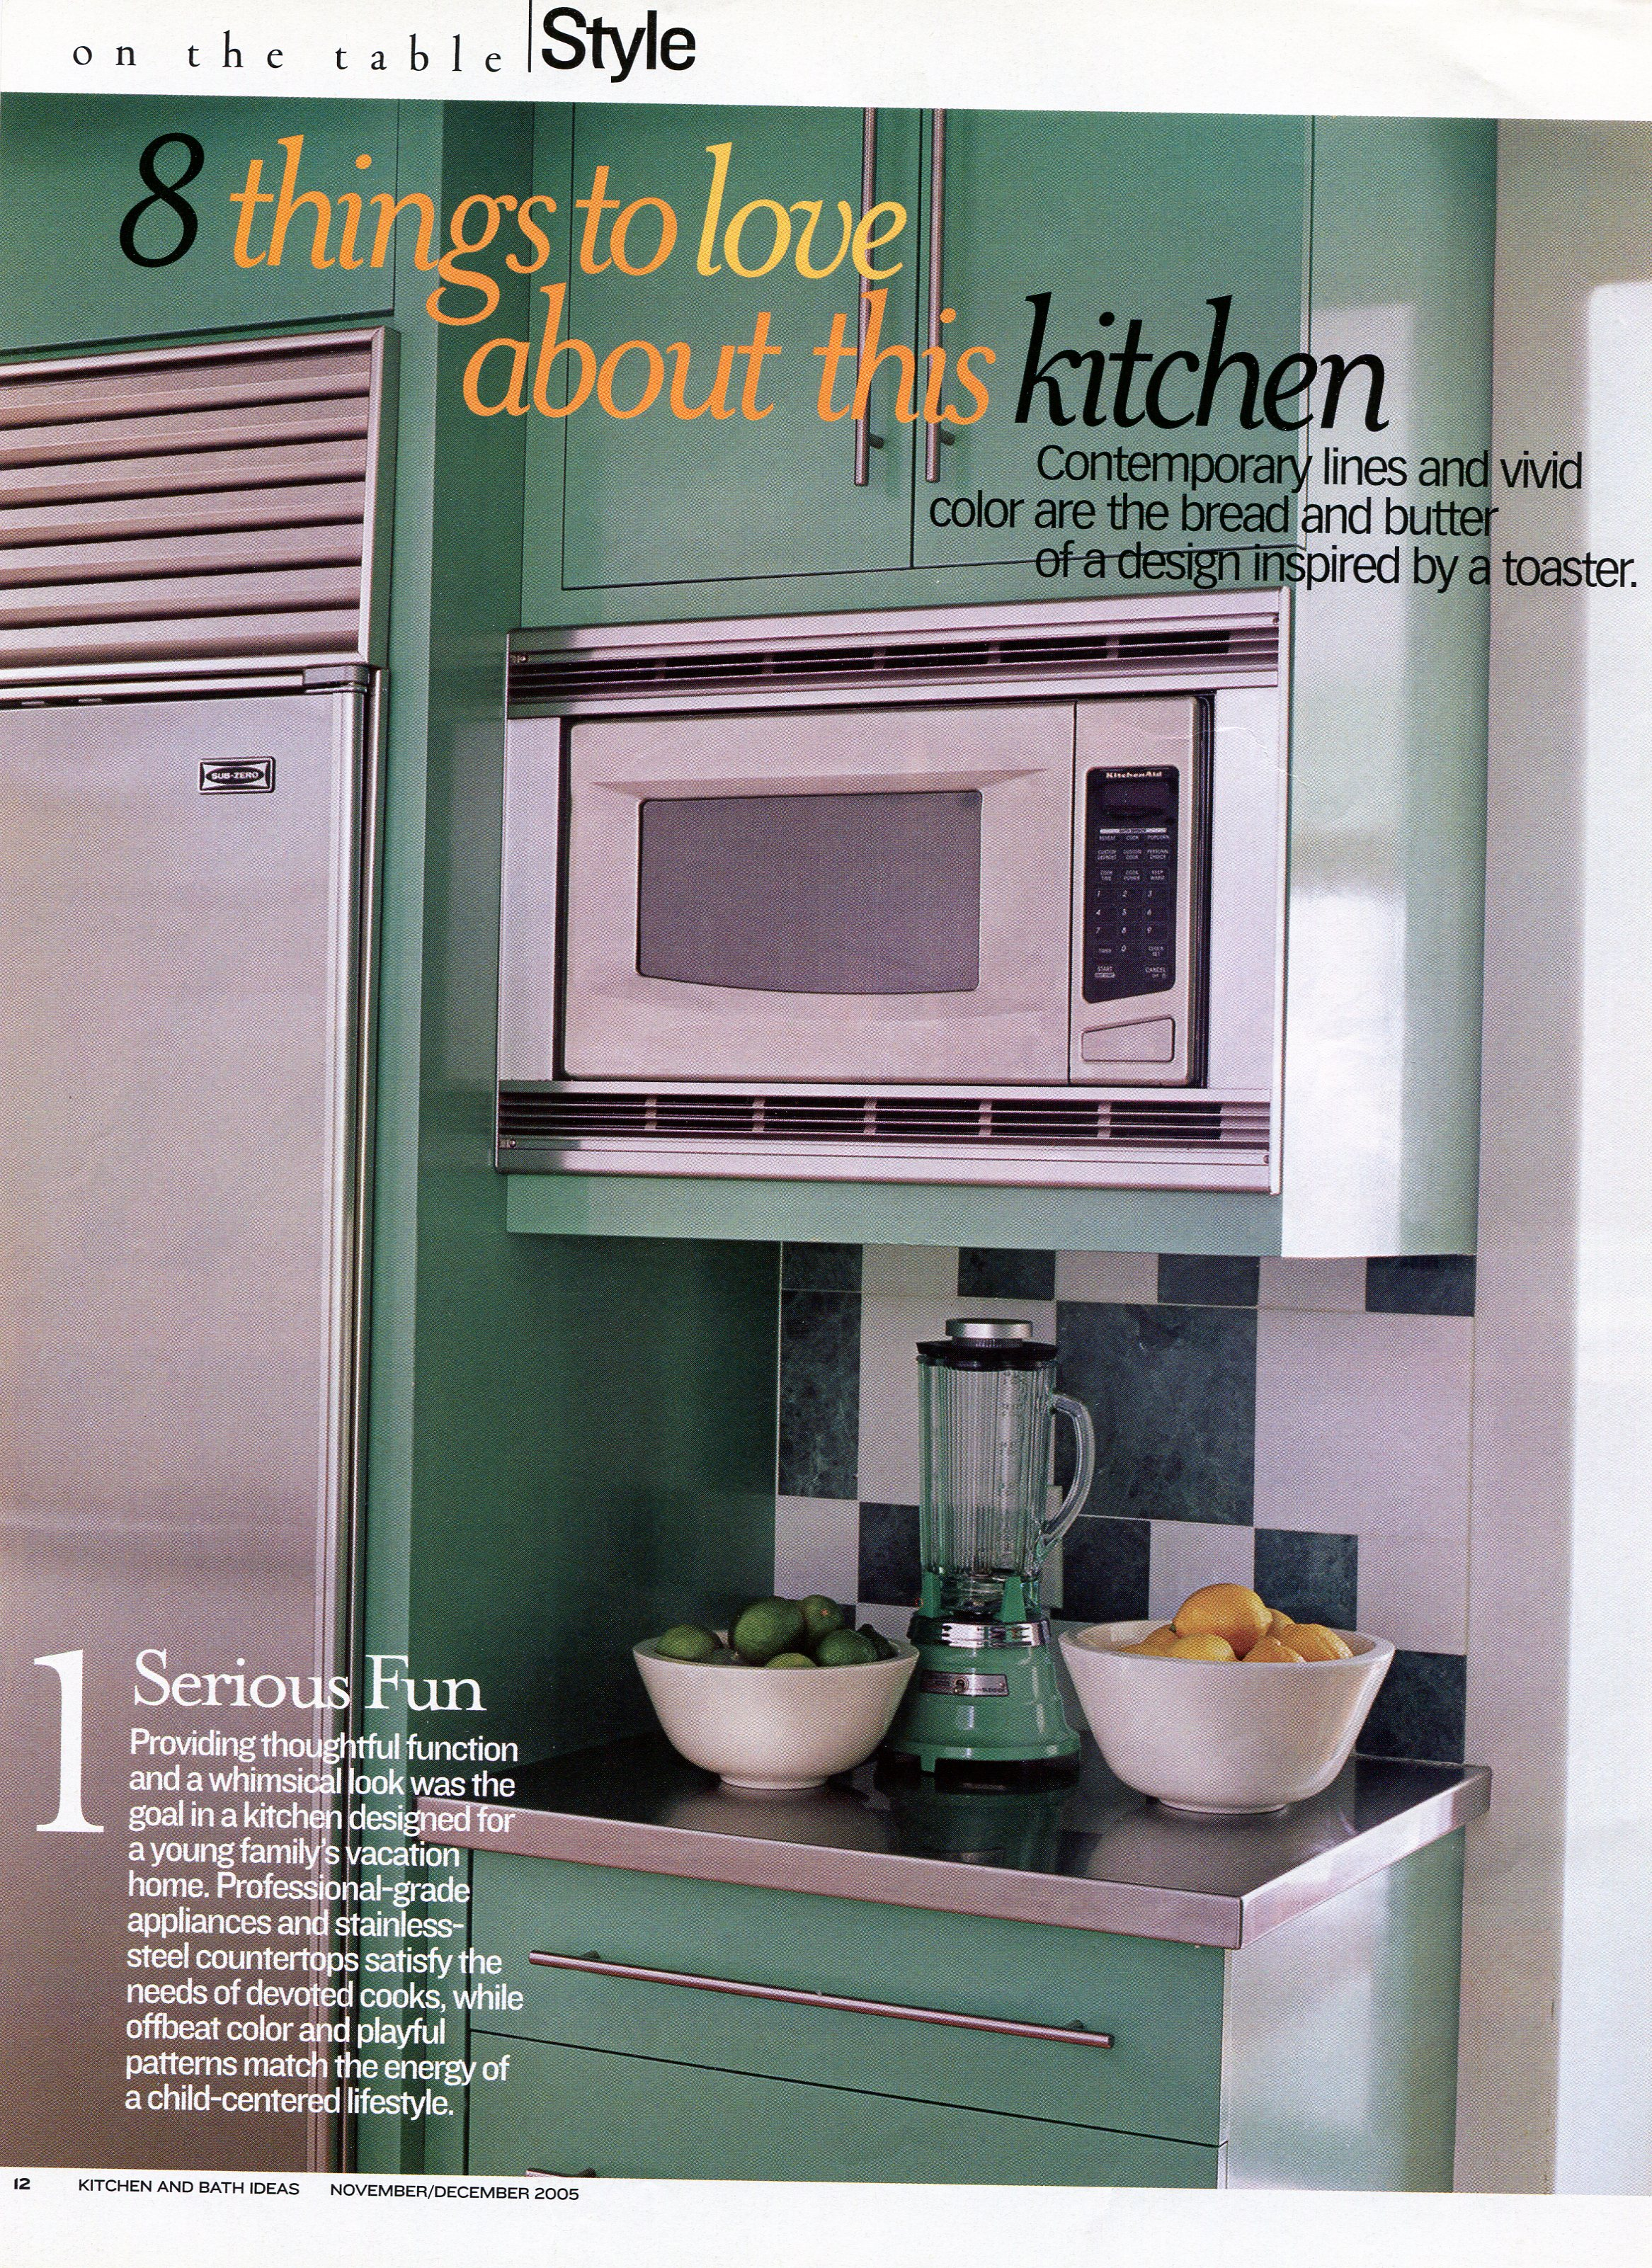 Kitchen And Ideas Nov-Dec 2005_1